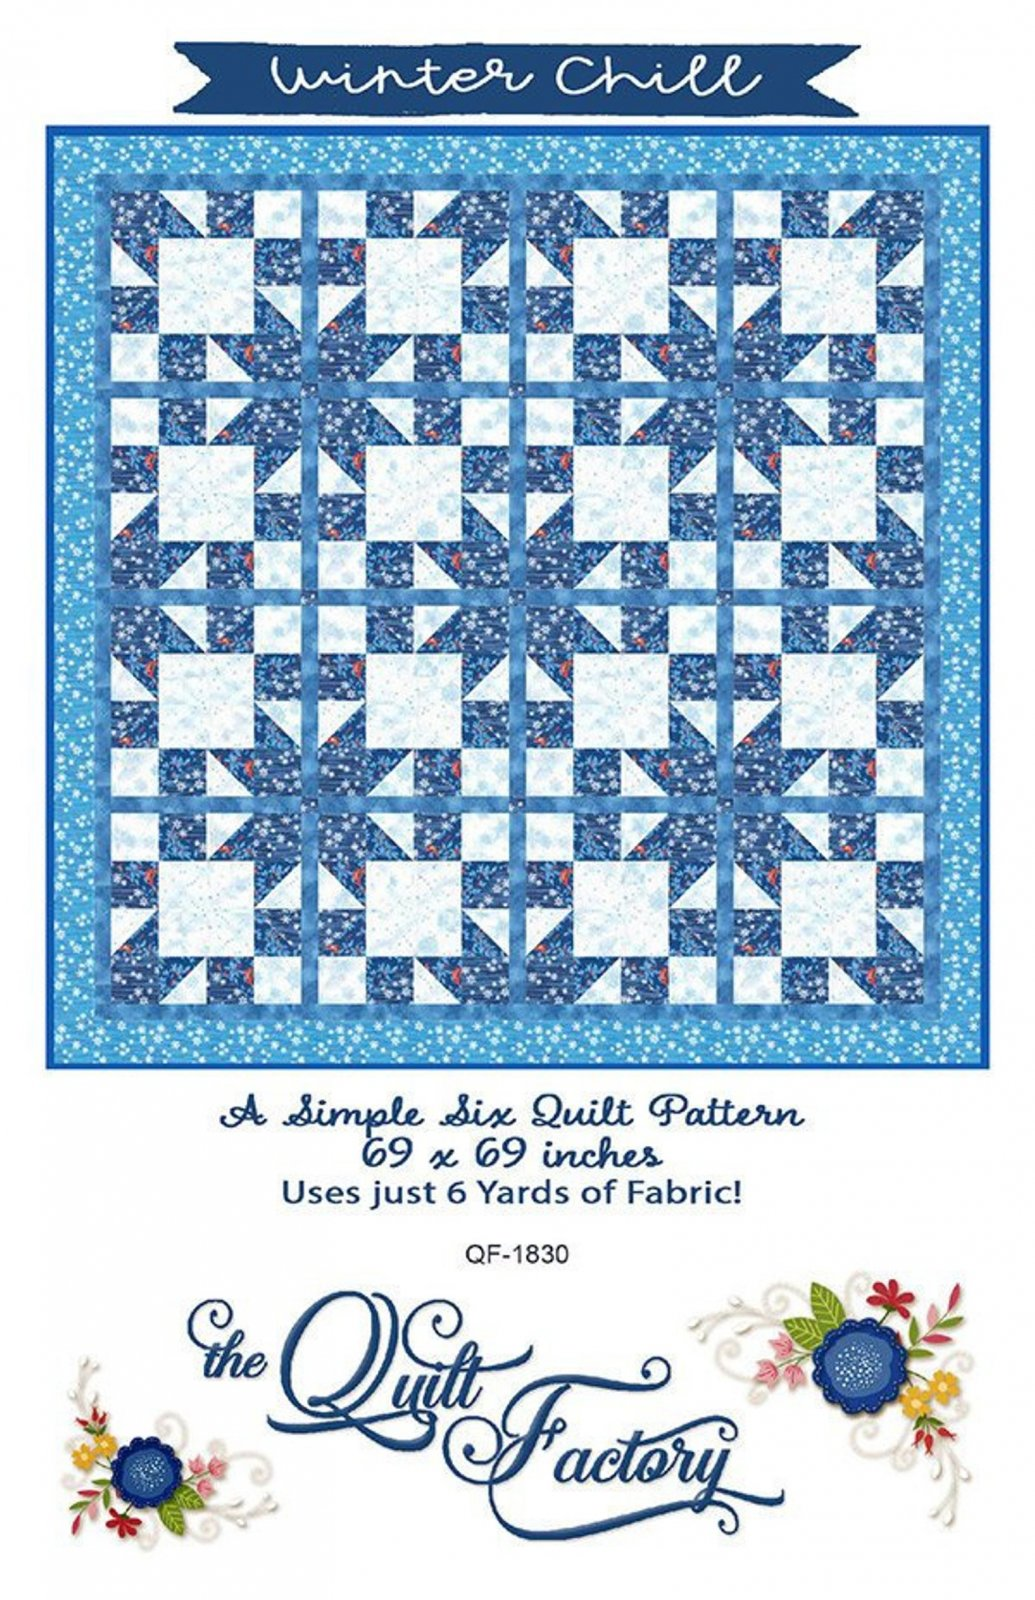 Winter Chill Kit with BACKING Fabric from Forest Frost Glitter, blue and white,